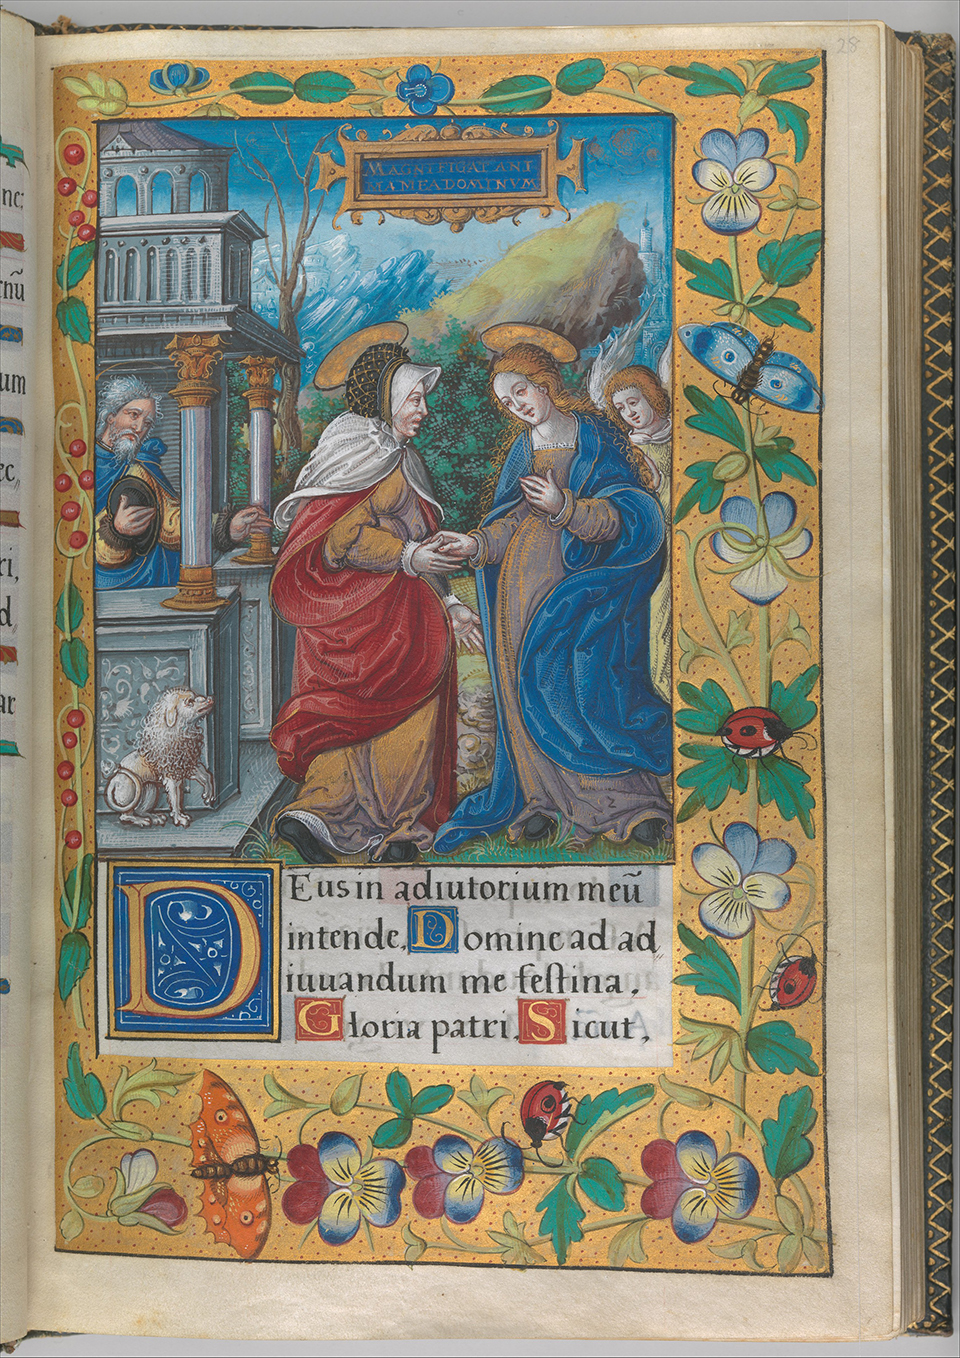 Illuminated Book of Hours made for King Francis I.